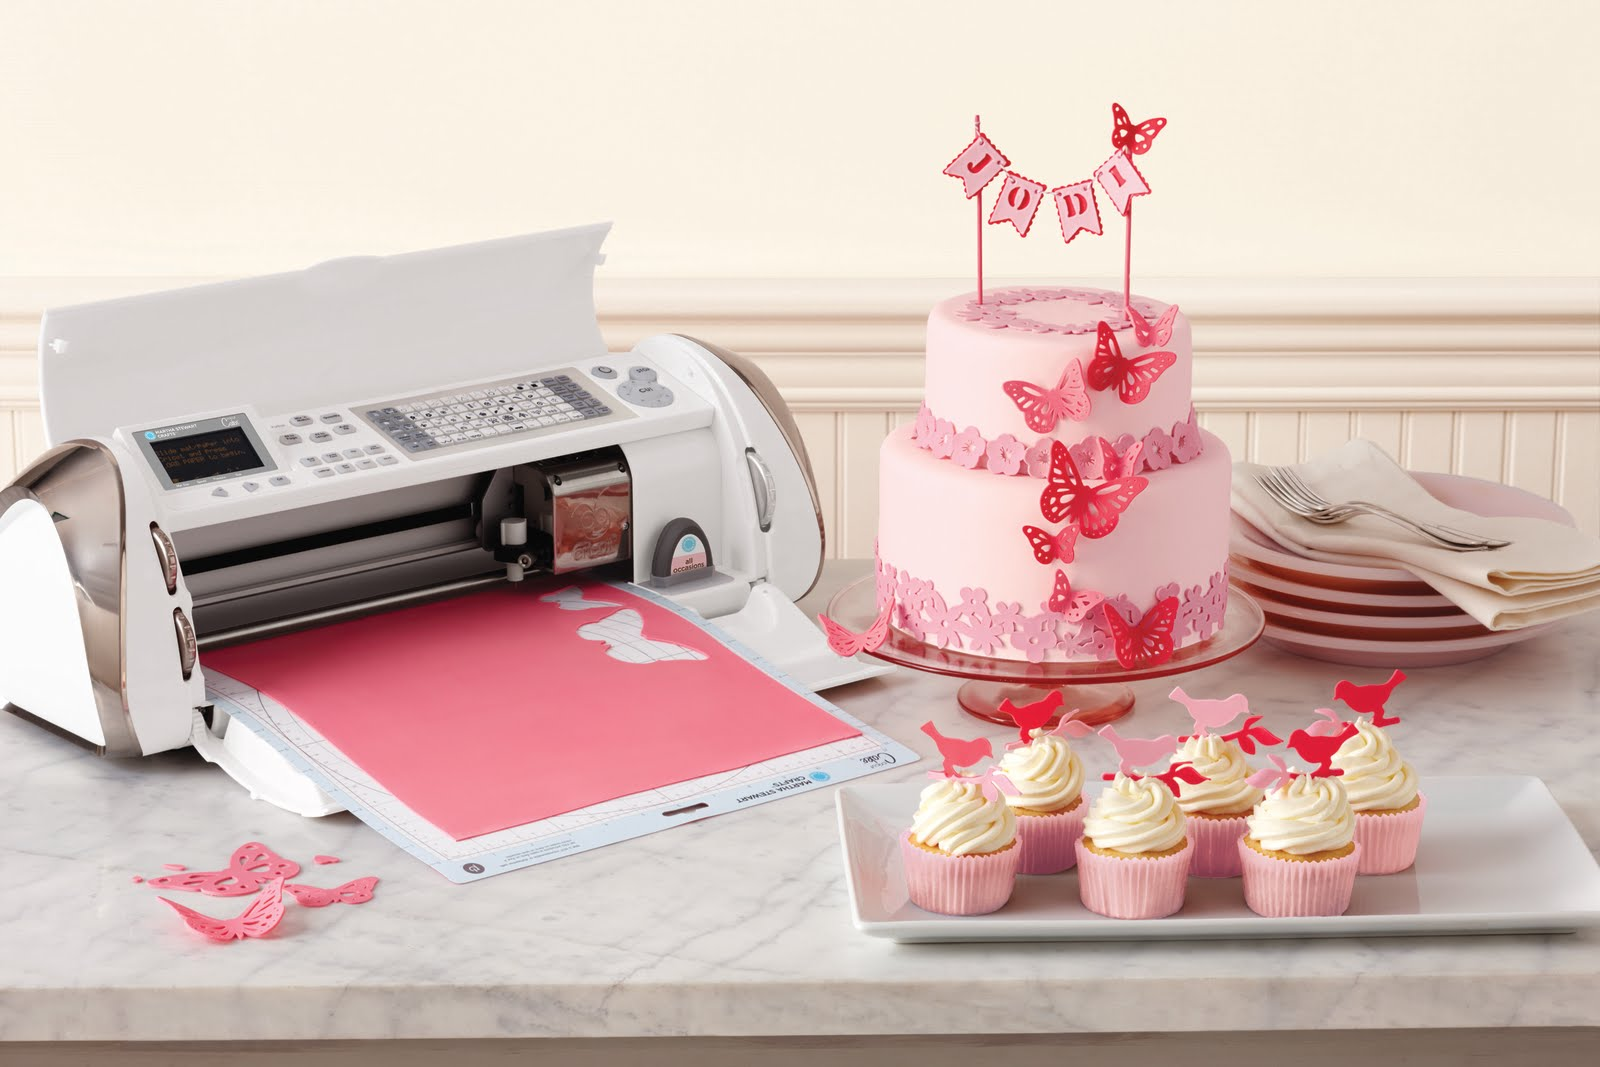 Can You Use Cricut Cake Machine To Cut Card